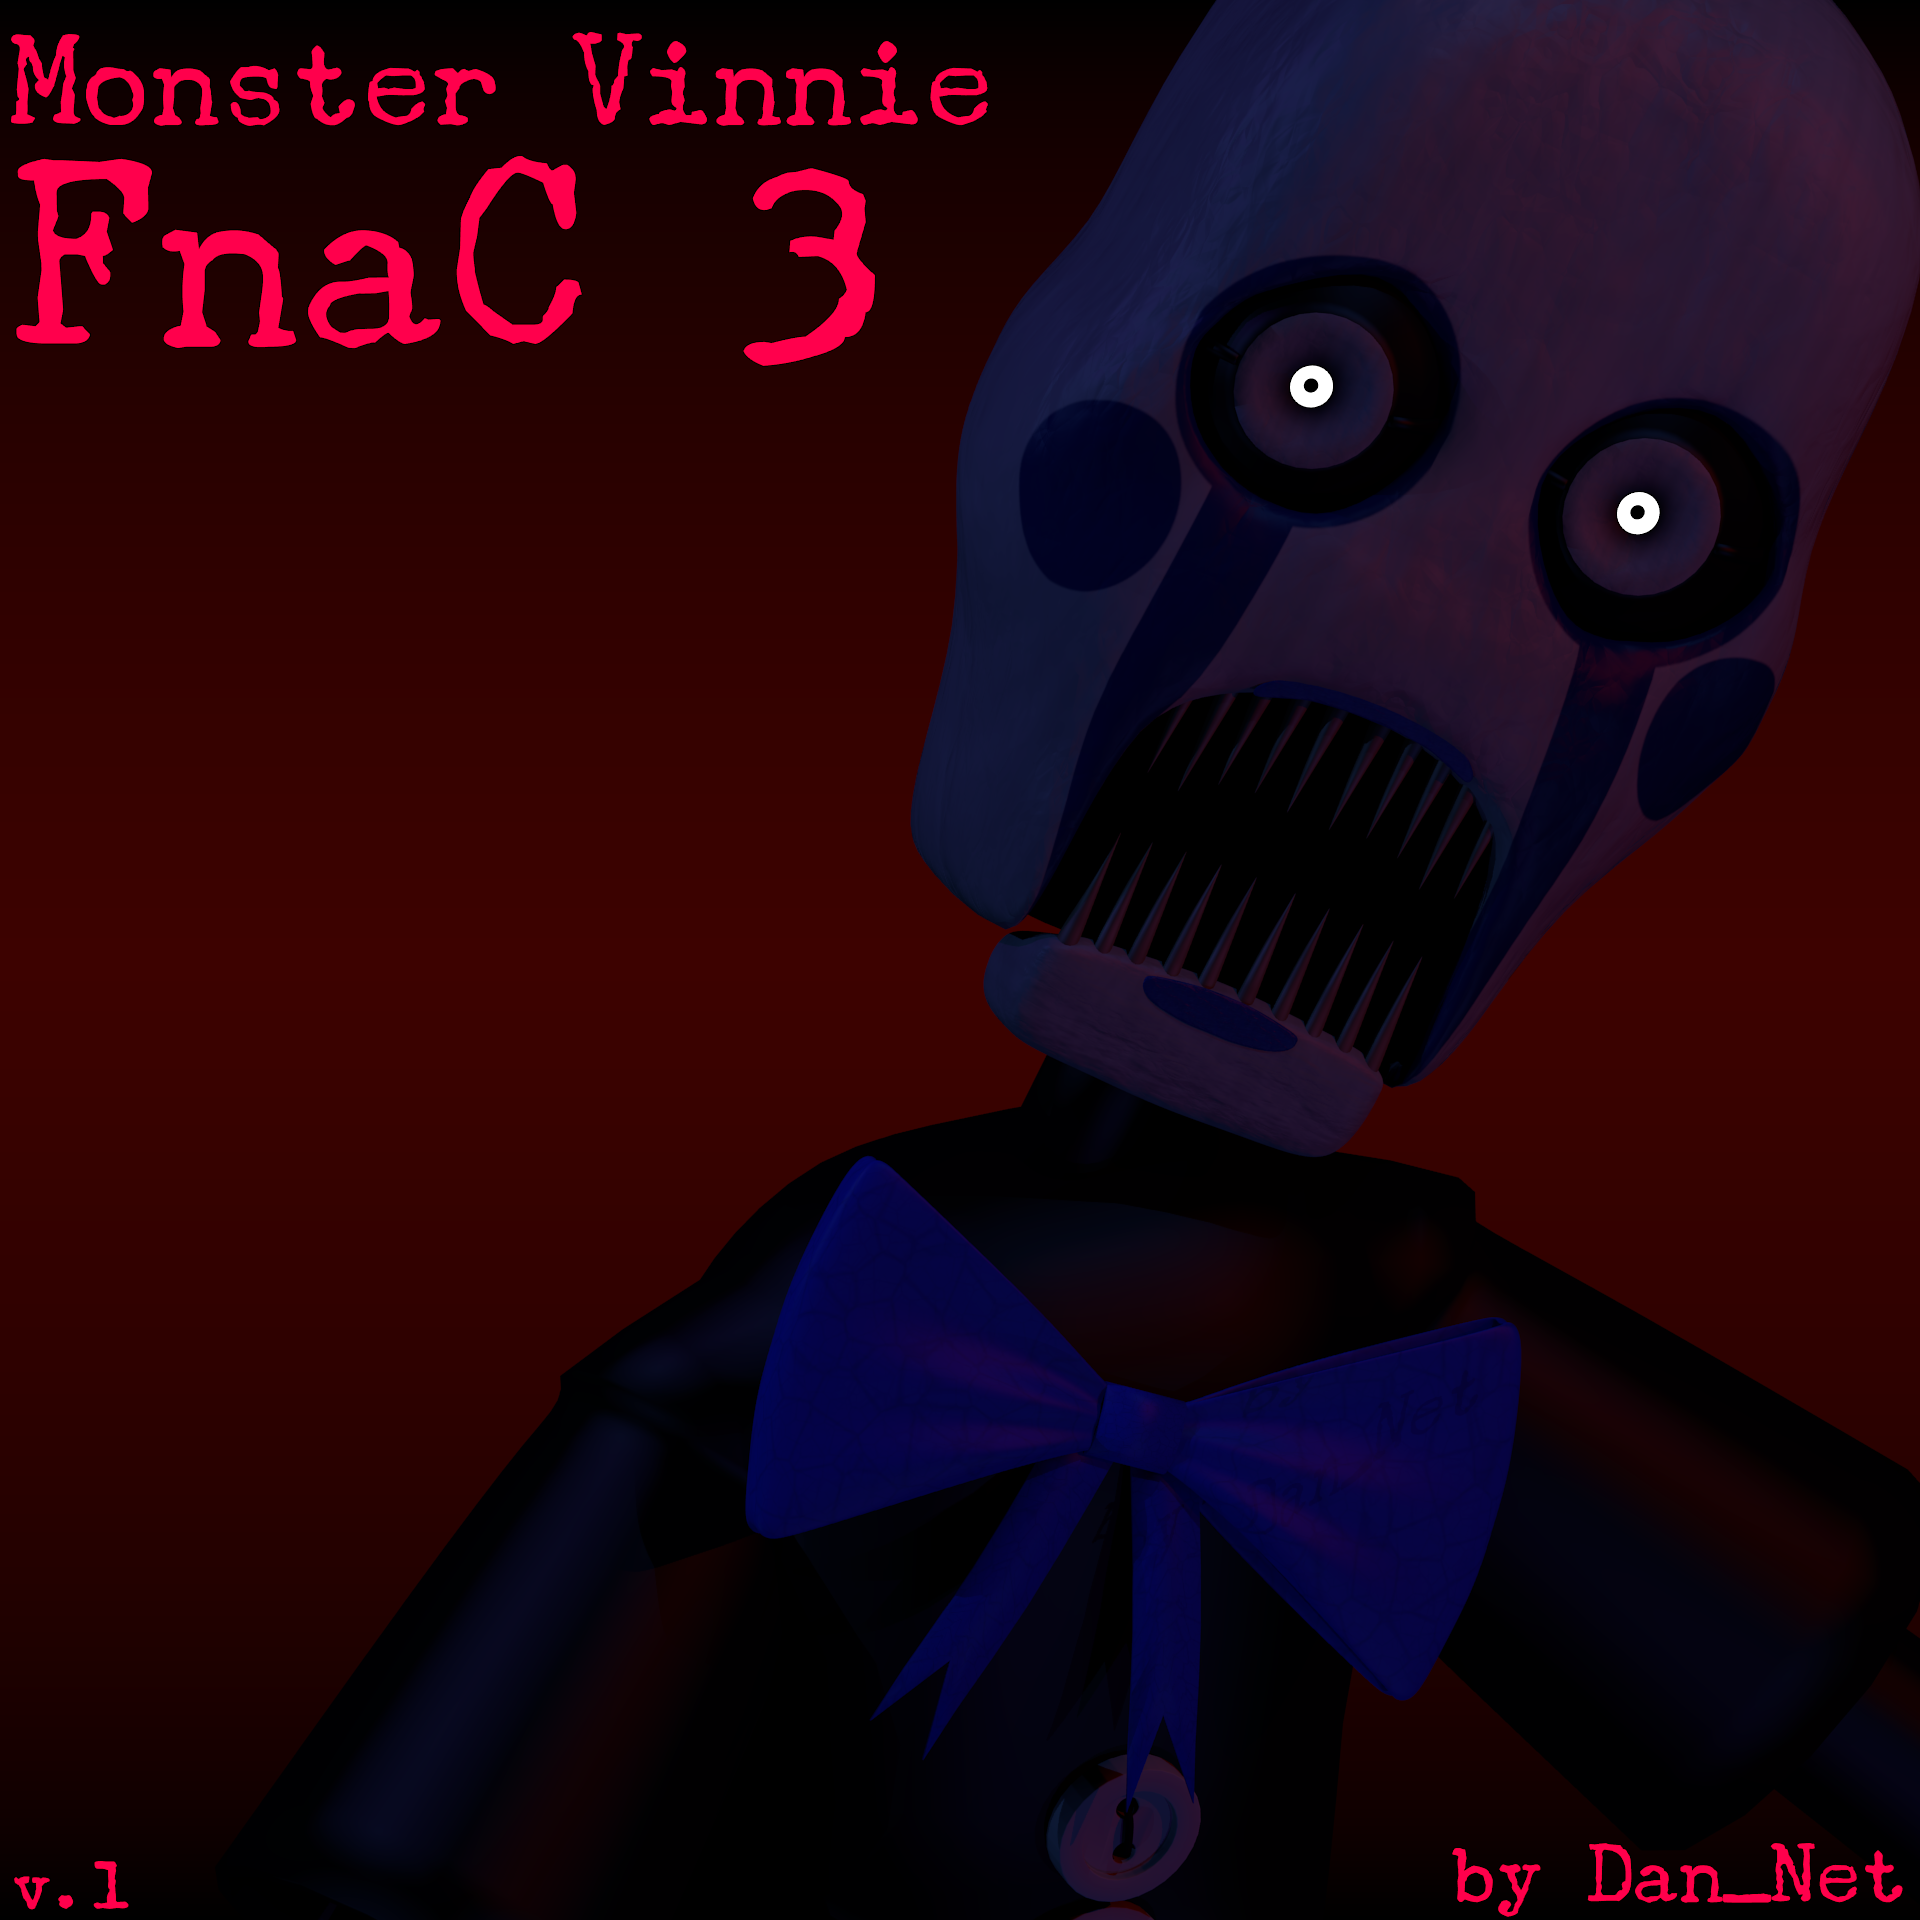 Monster Vinnie from FnaC 3 by DaniilNetwork on DeviantArt